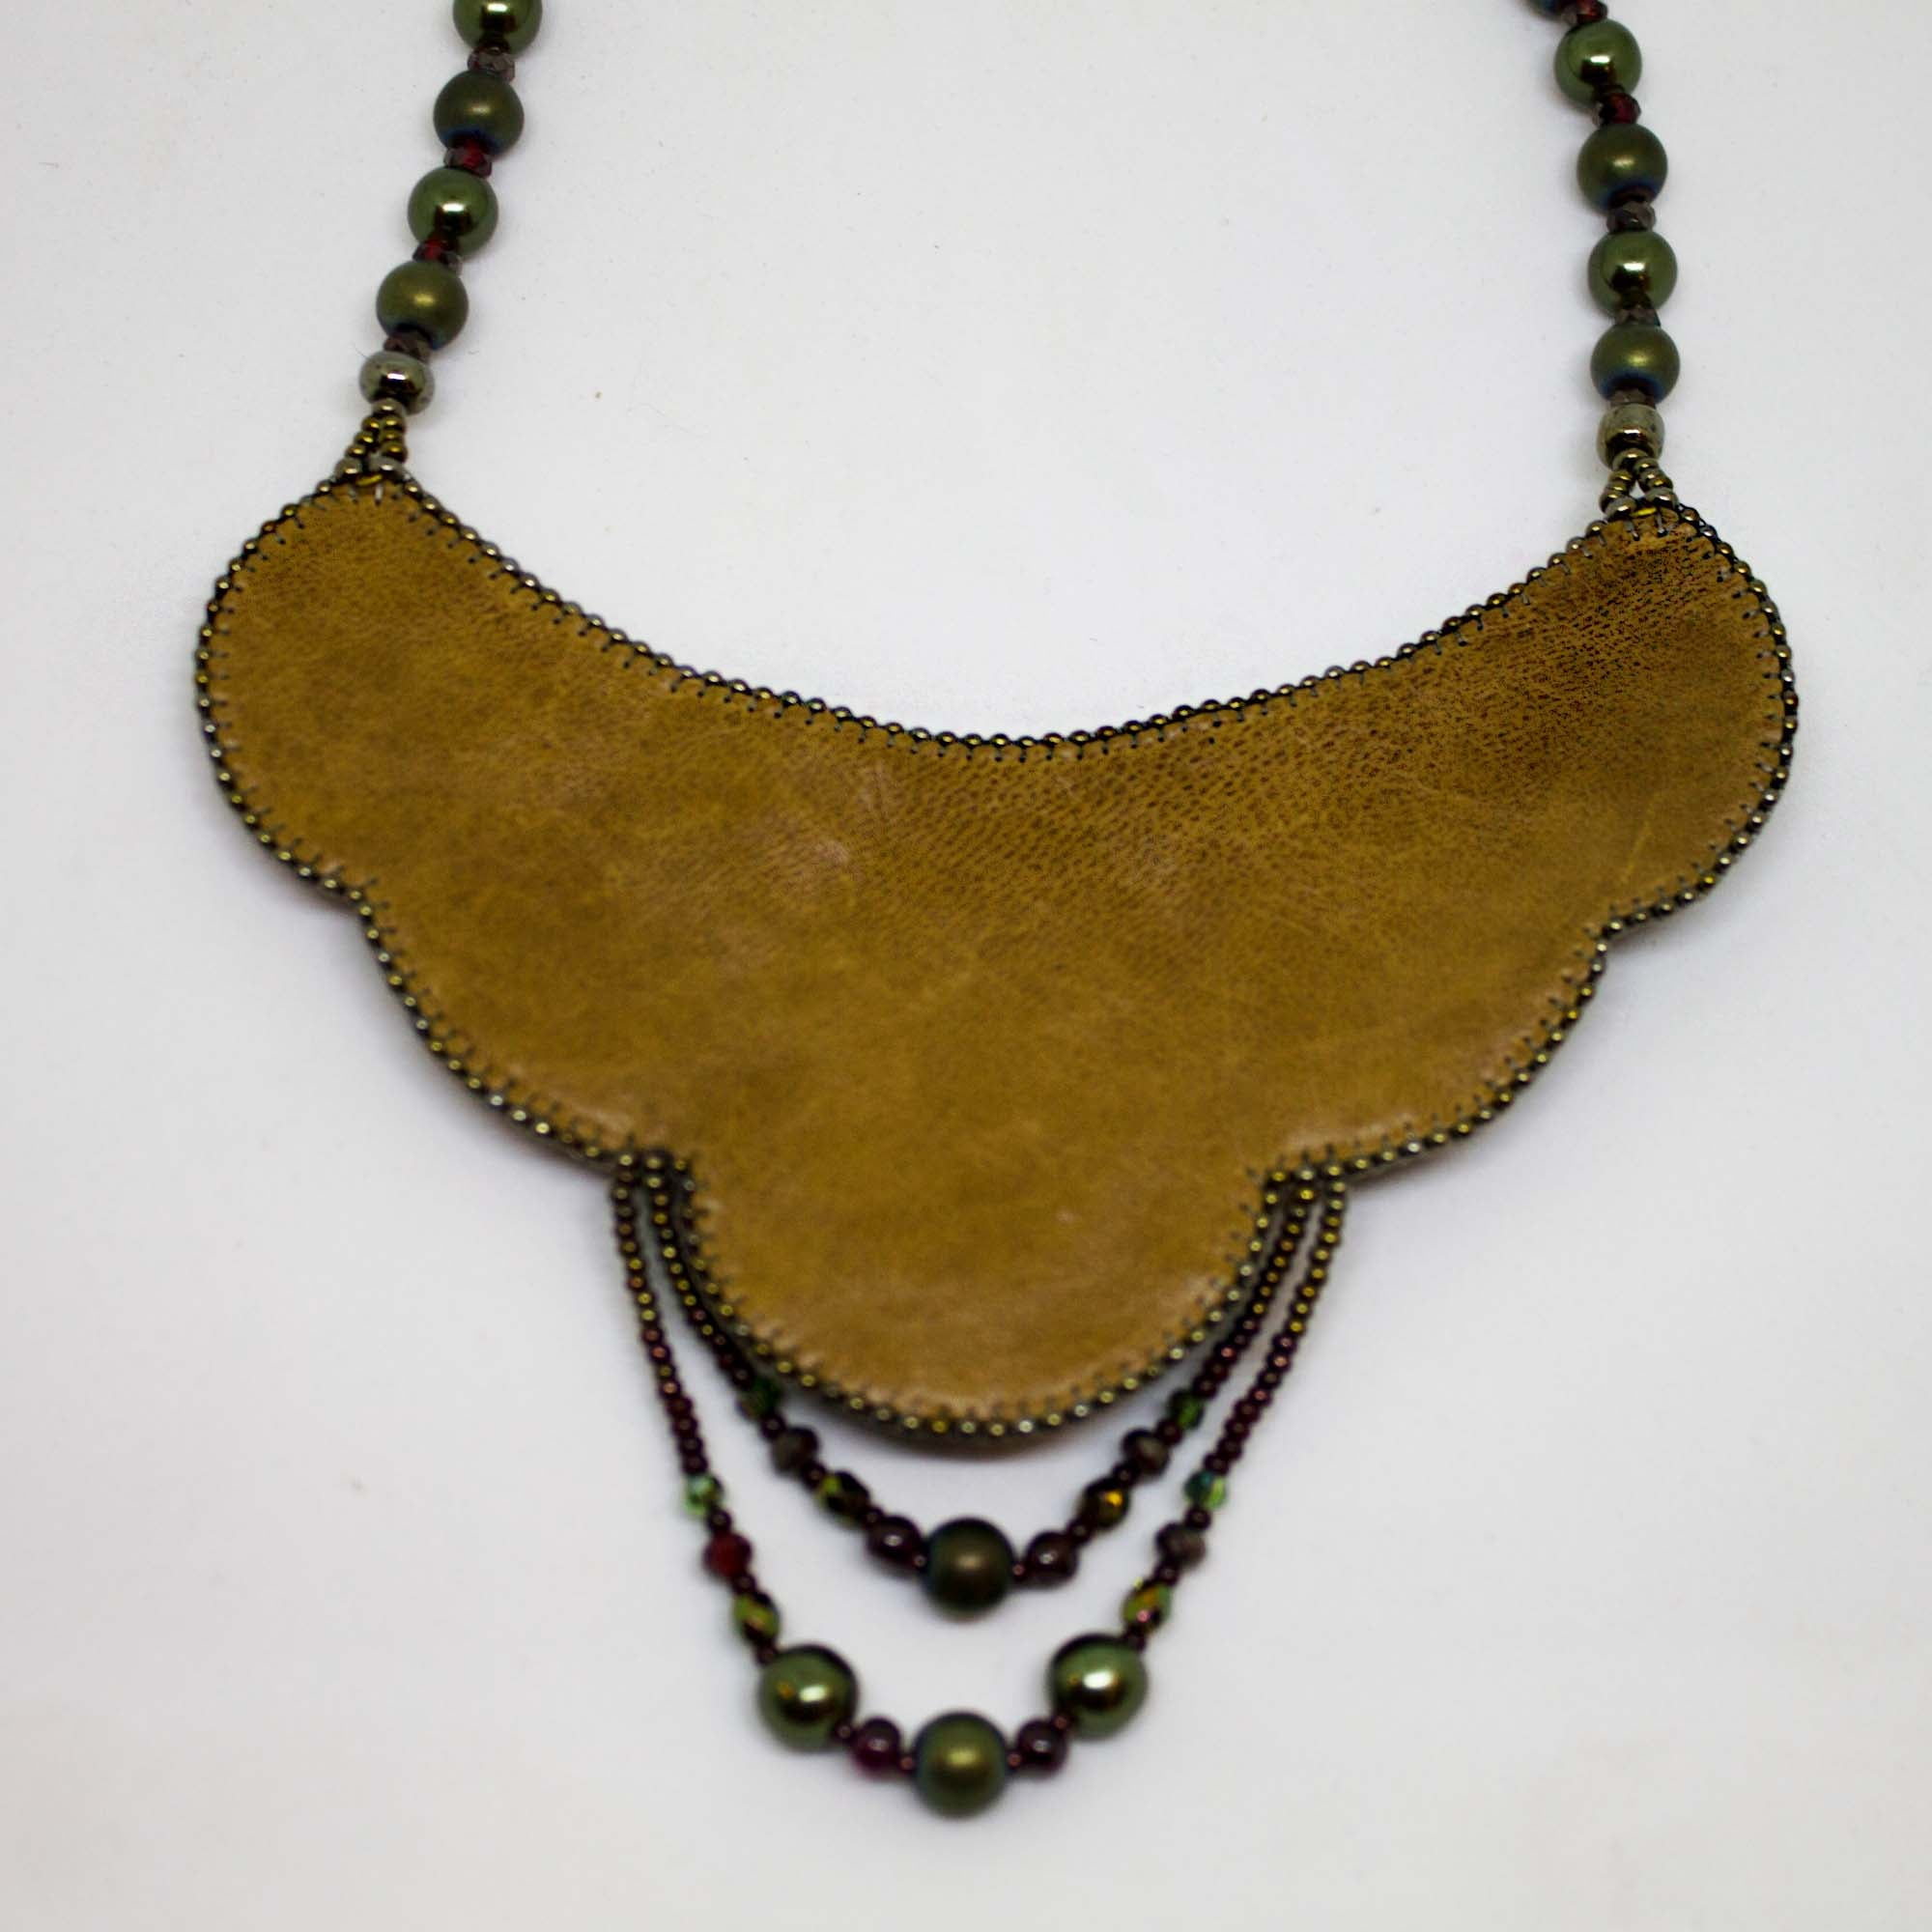 Necklace with Heliotrope stone